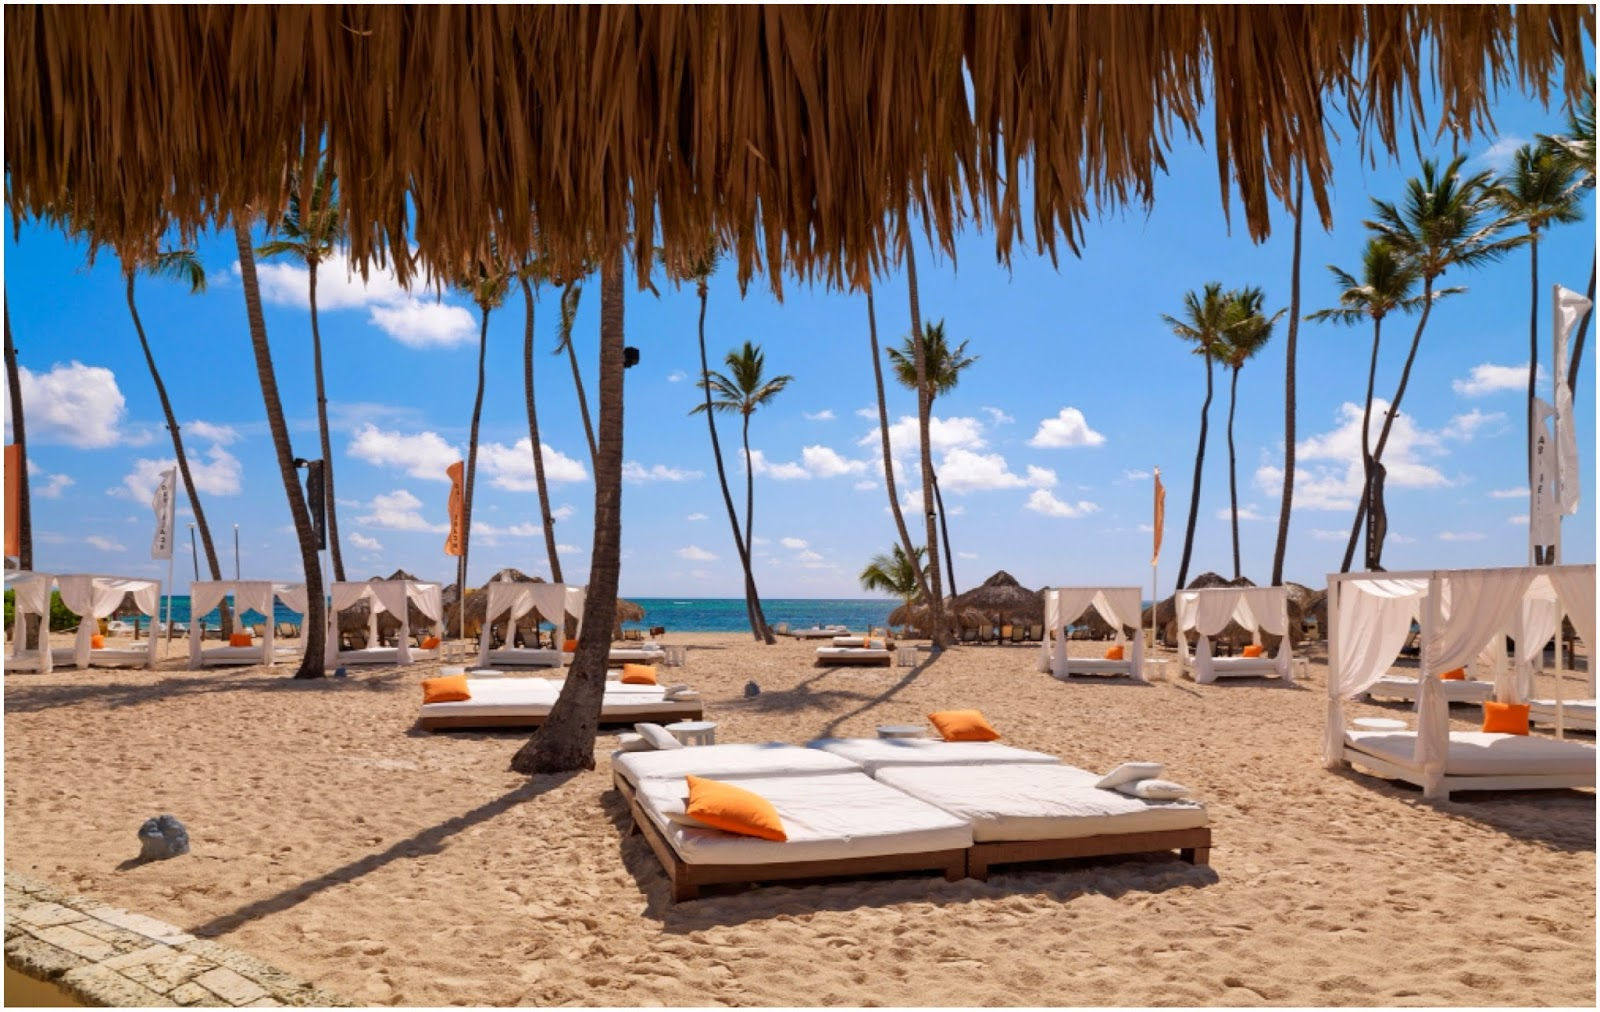 paradisus palma real, punta cana - redefining luxury all-inclusive